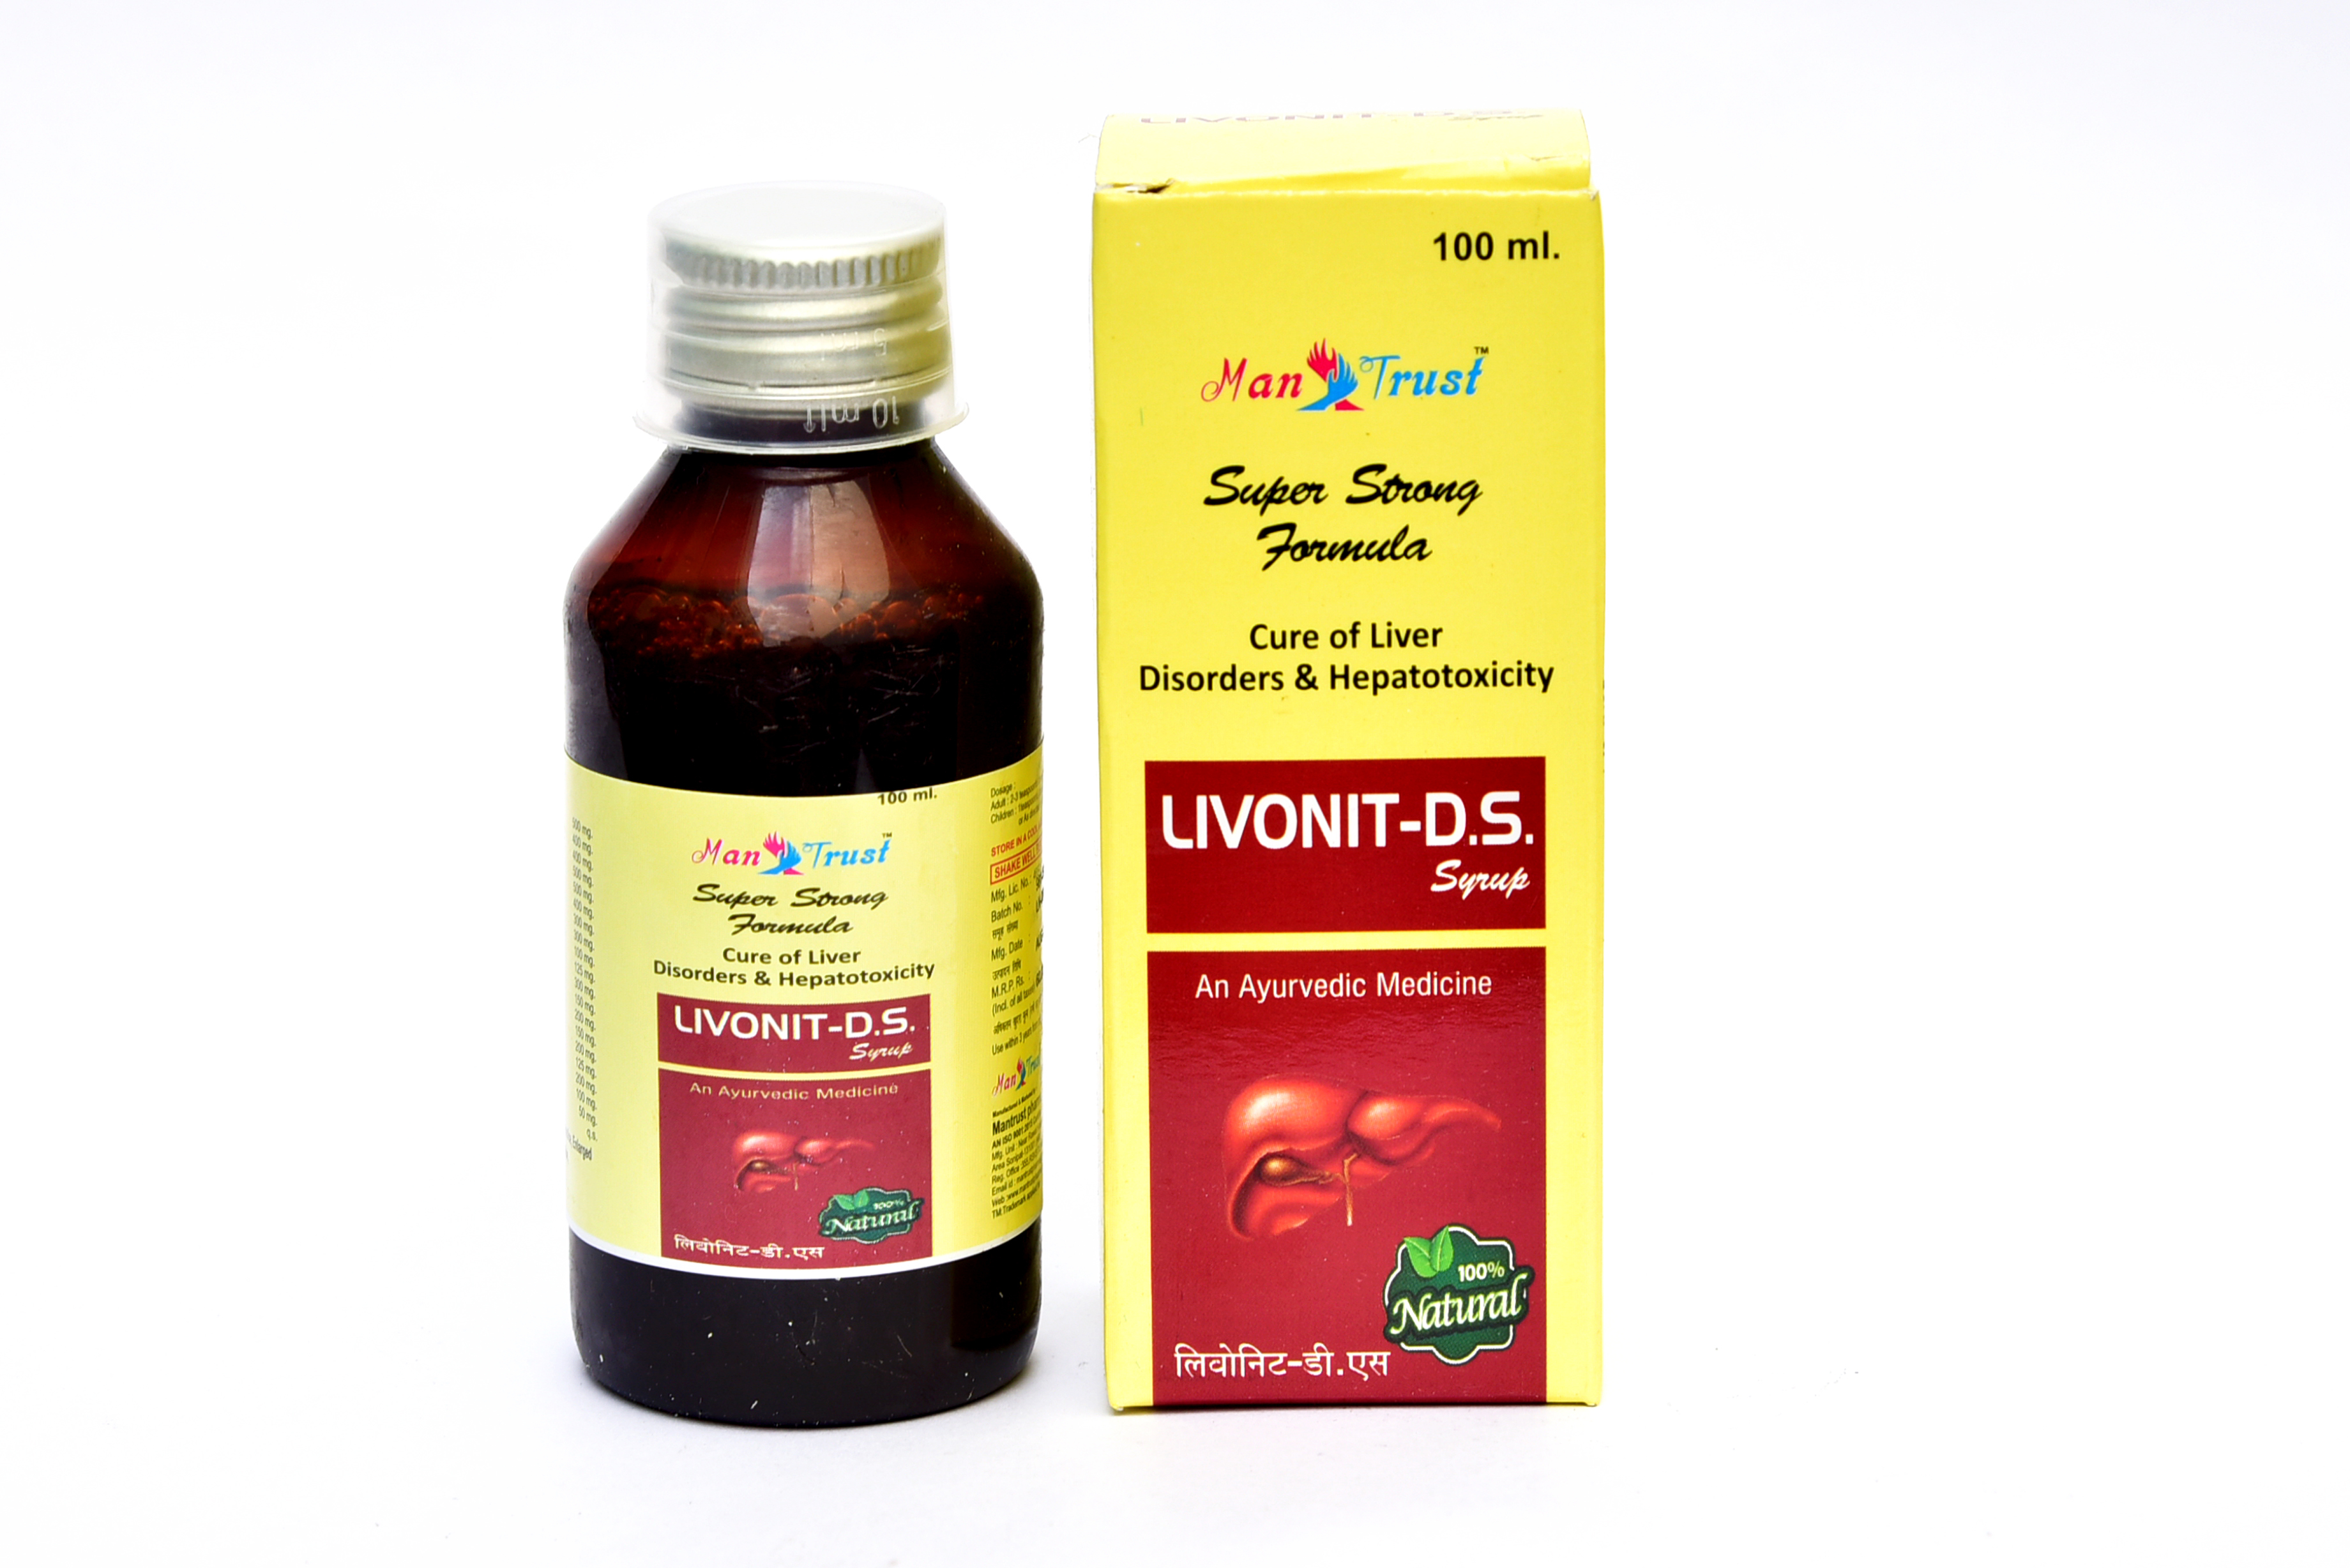 LIVONIT DS SYRUP